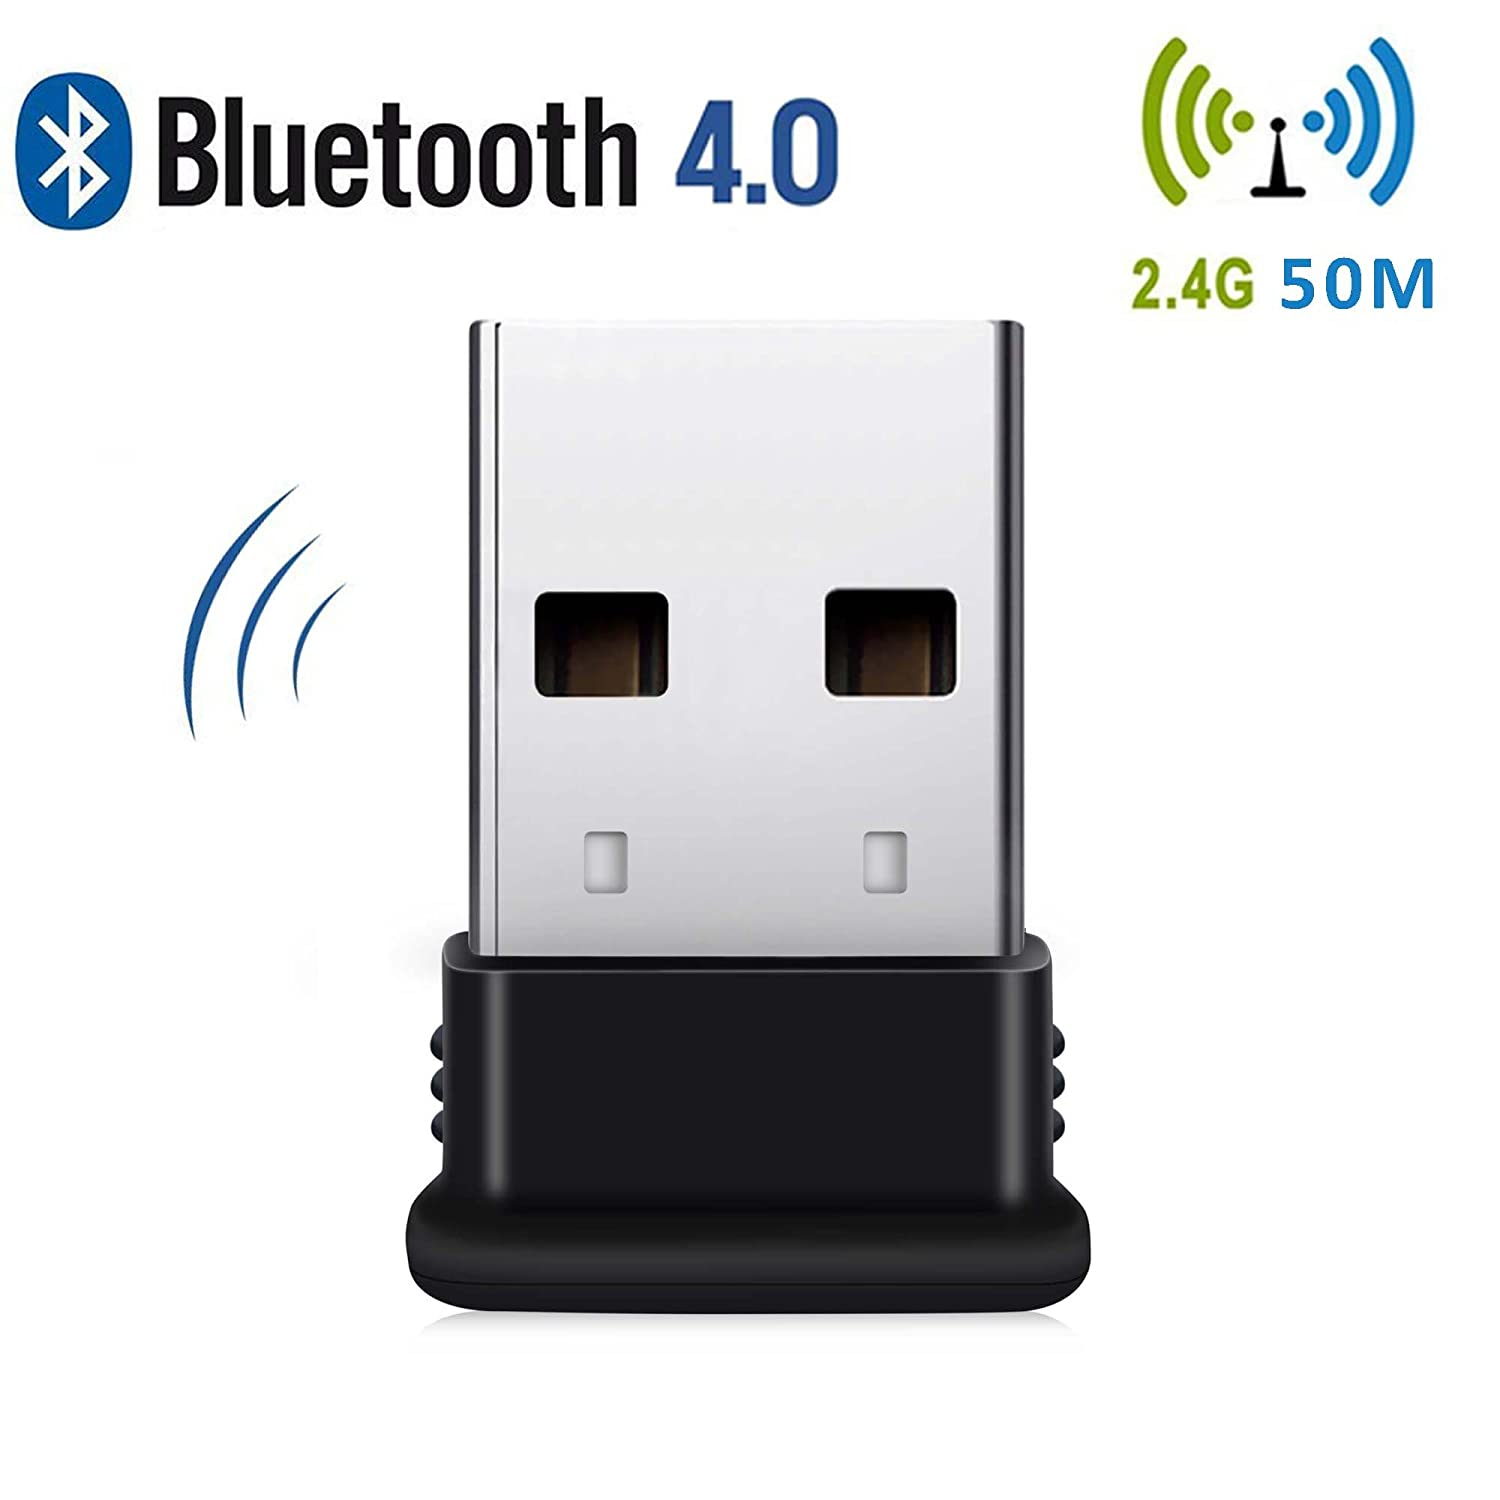 Bluetooth USB Adapter, 4 0 USB Bluetooth Dongle for desktop,Windows 10/  8 1/ 8, Vista and XP, Devices with 2 4Ghz range by KEY IDEA